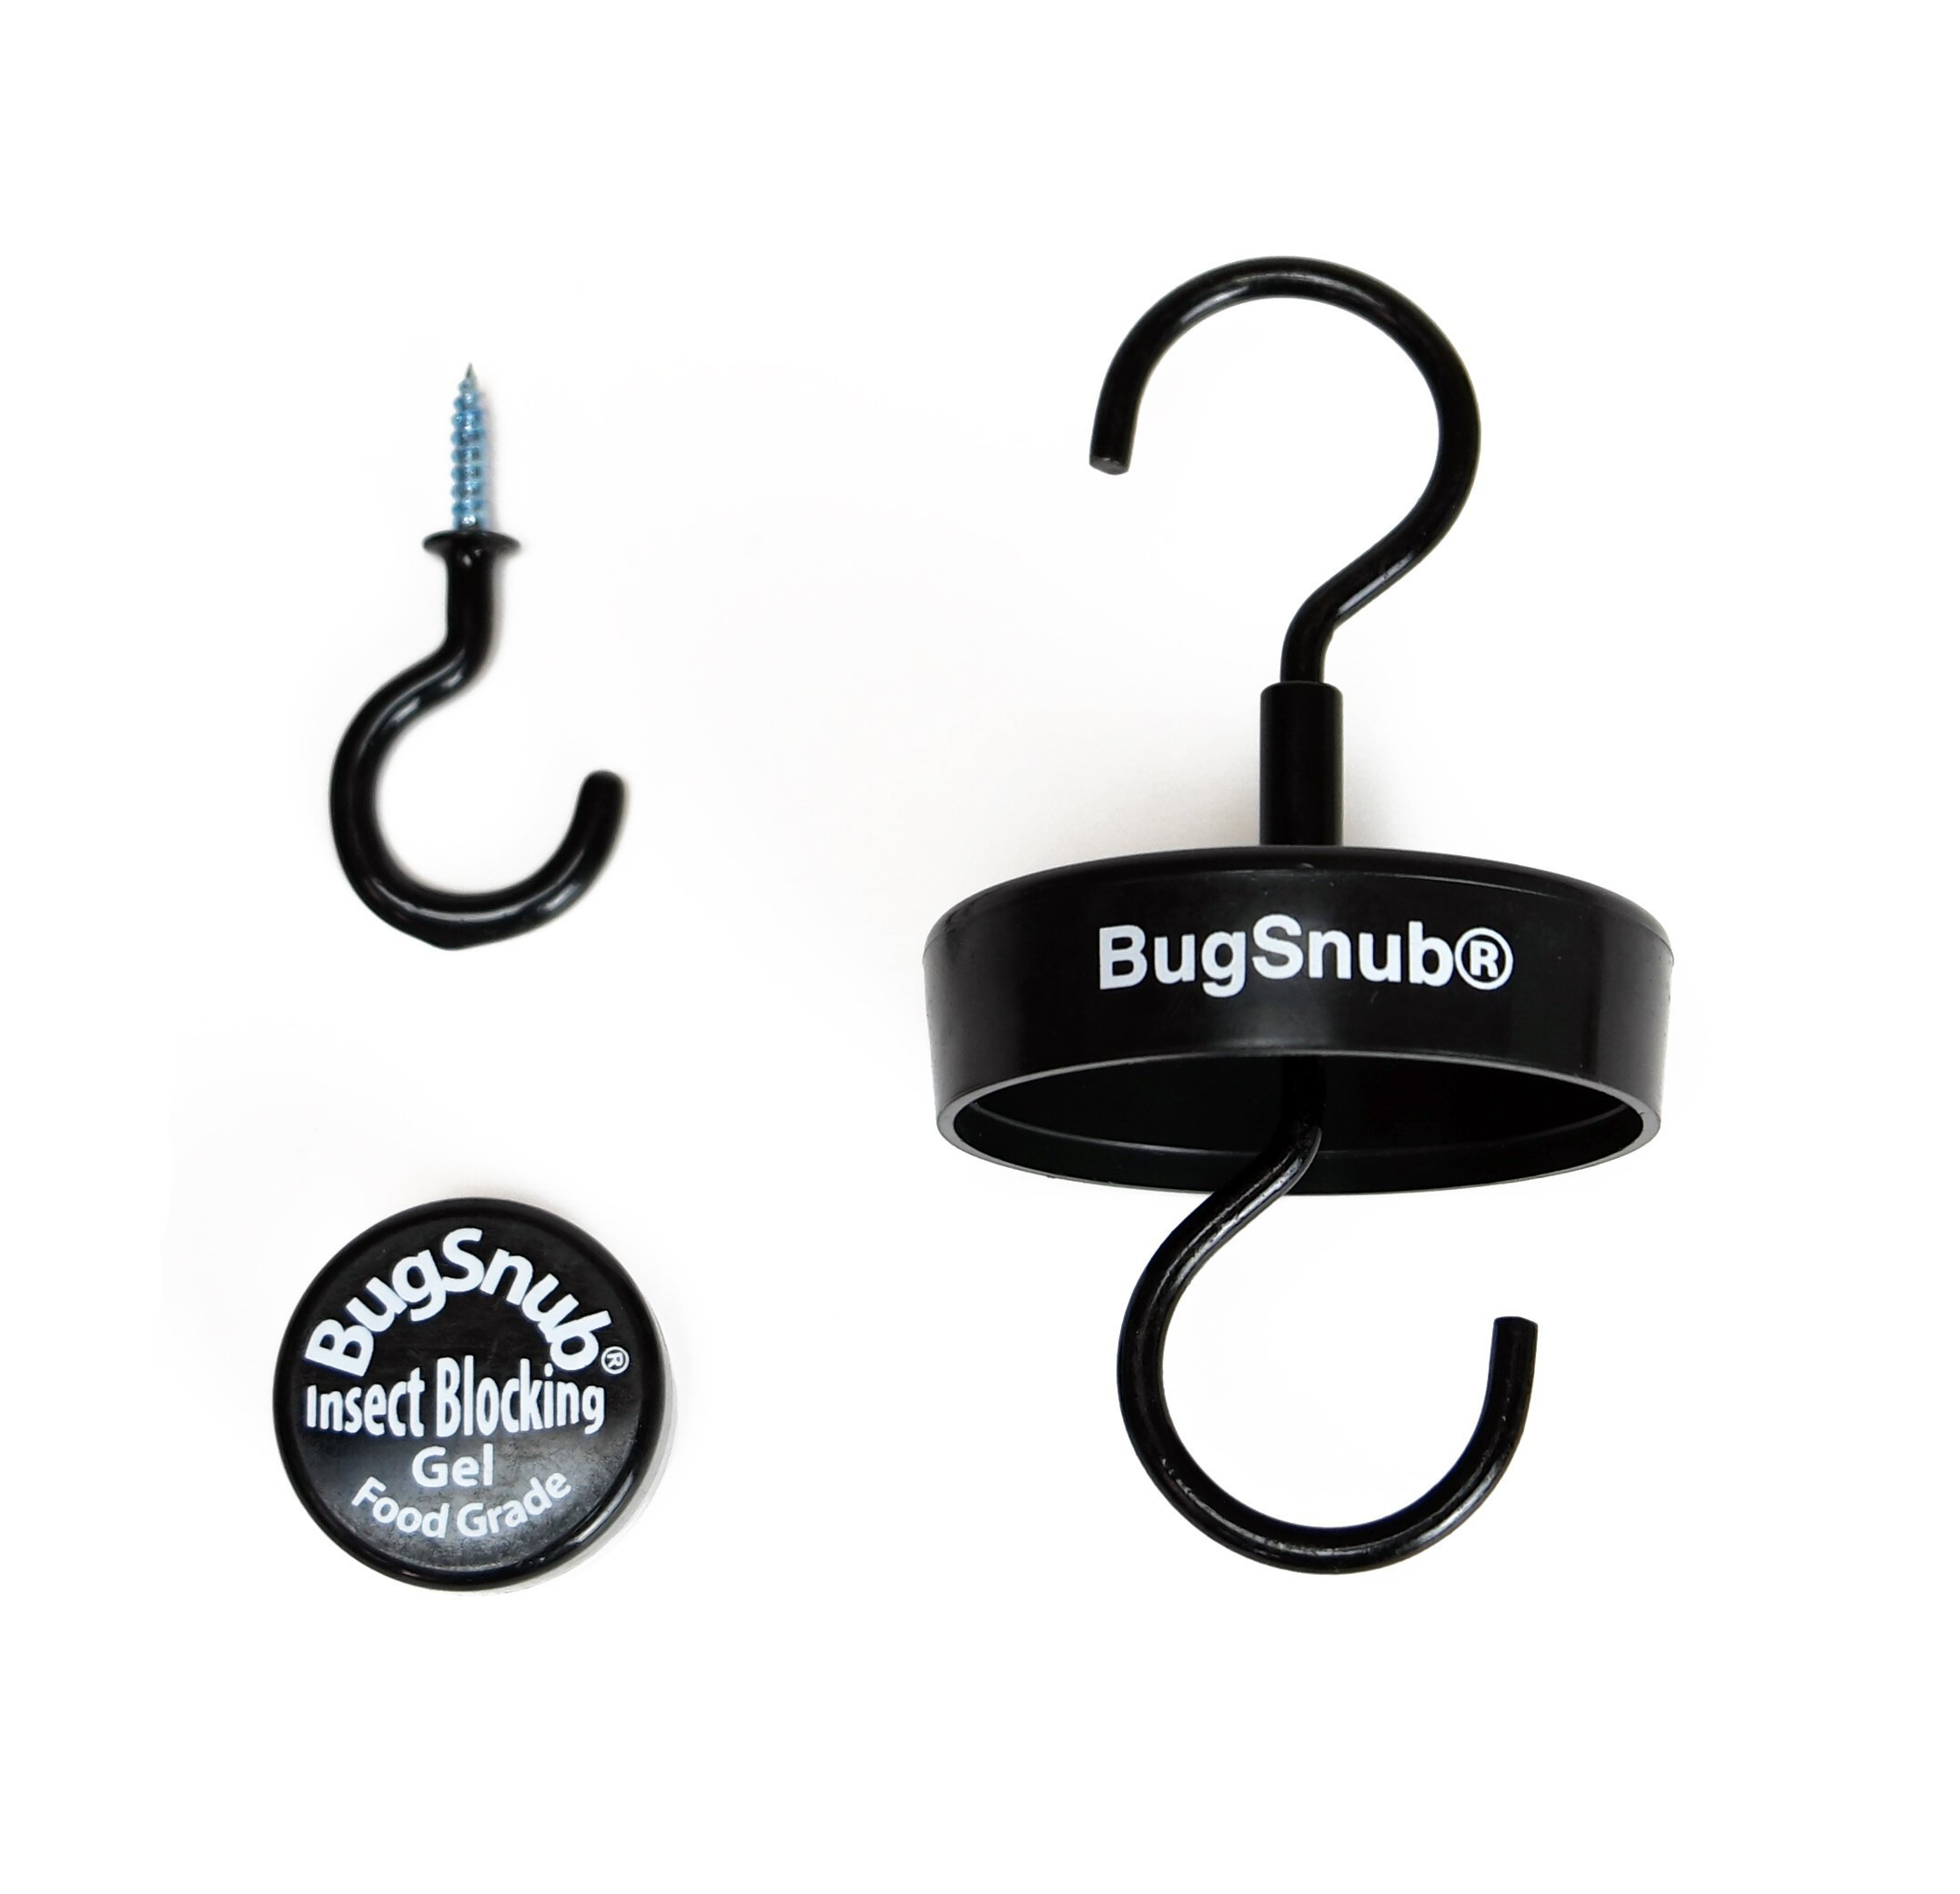 BugSnub Hummingbird Nectar Ant Guard - Moat Free, Poison Free Ant Deterrent for Feeders Up to 10 Pounds, (BSHH4)